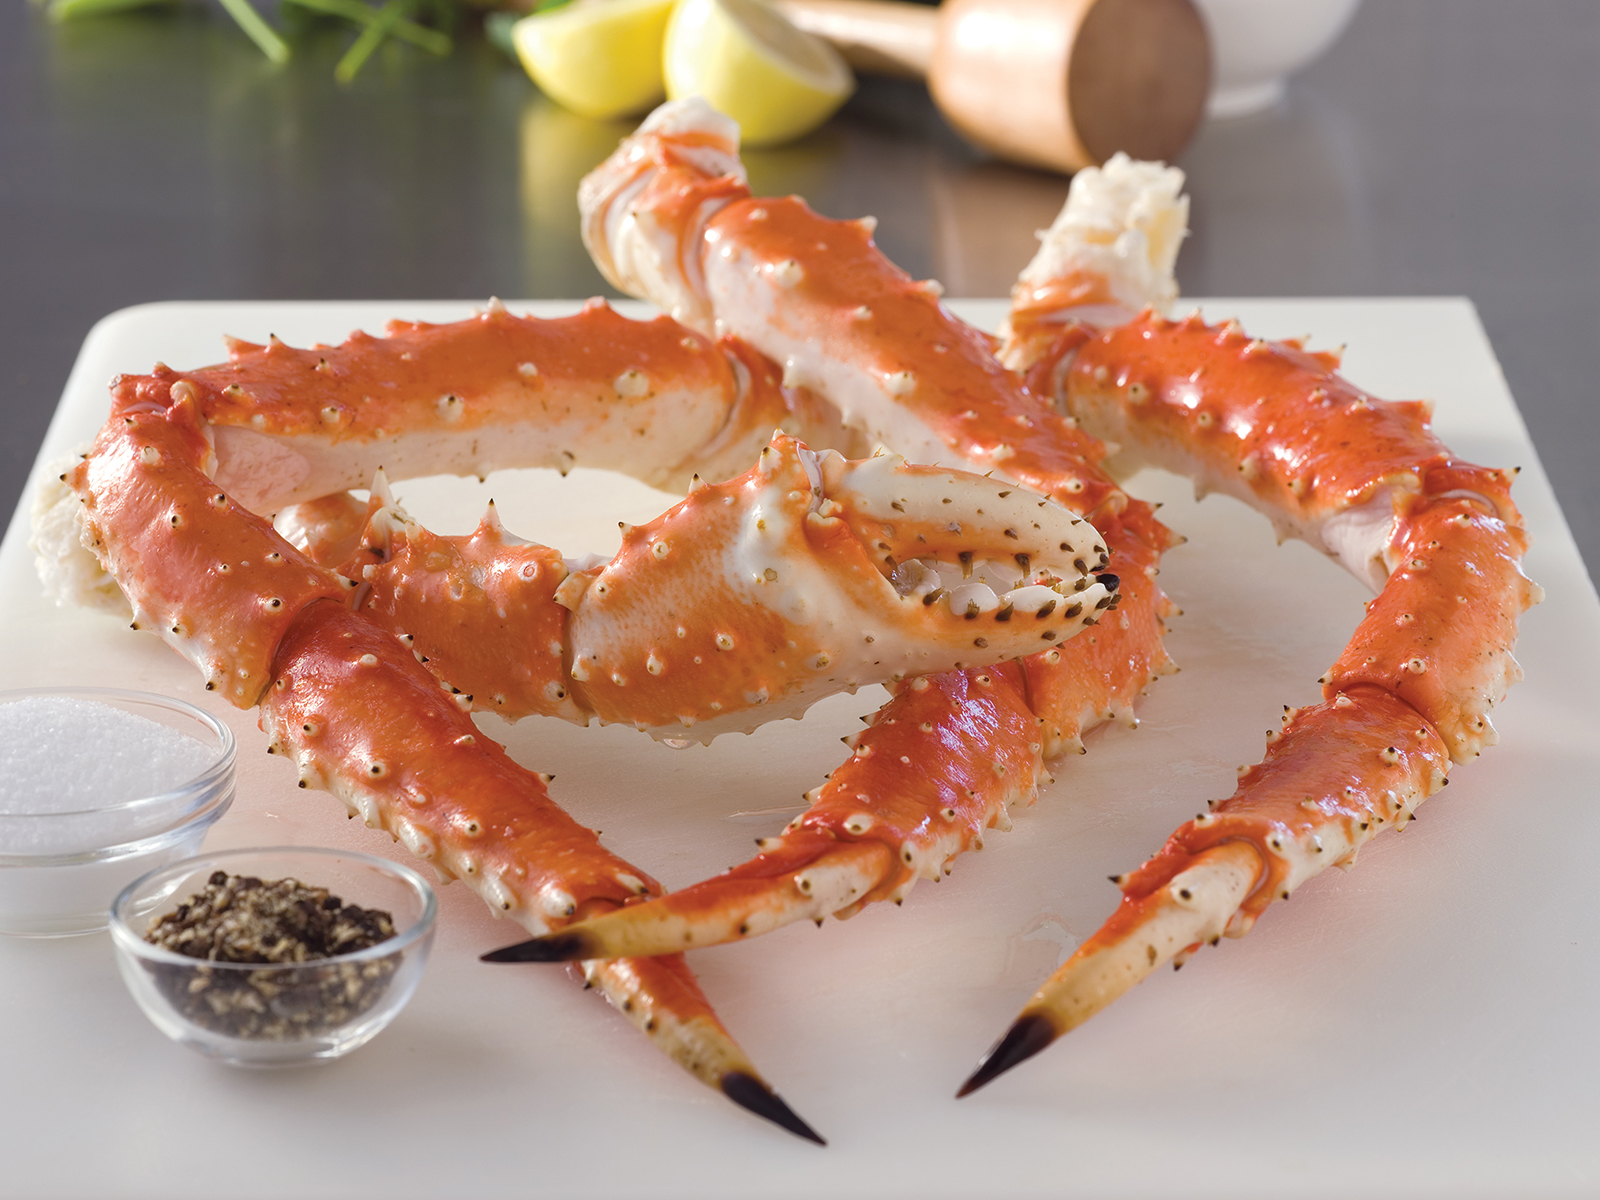 Red King Crab Legs & Claws 16-20 Count (1/20 lb) 432369